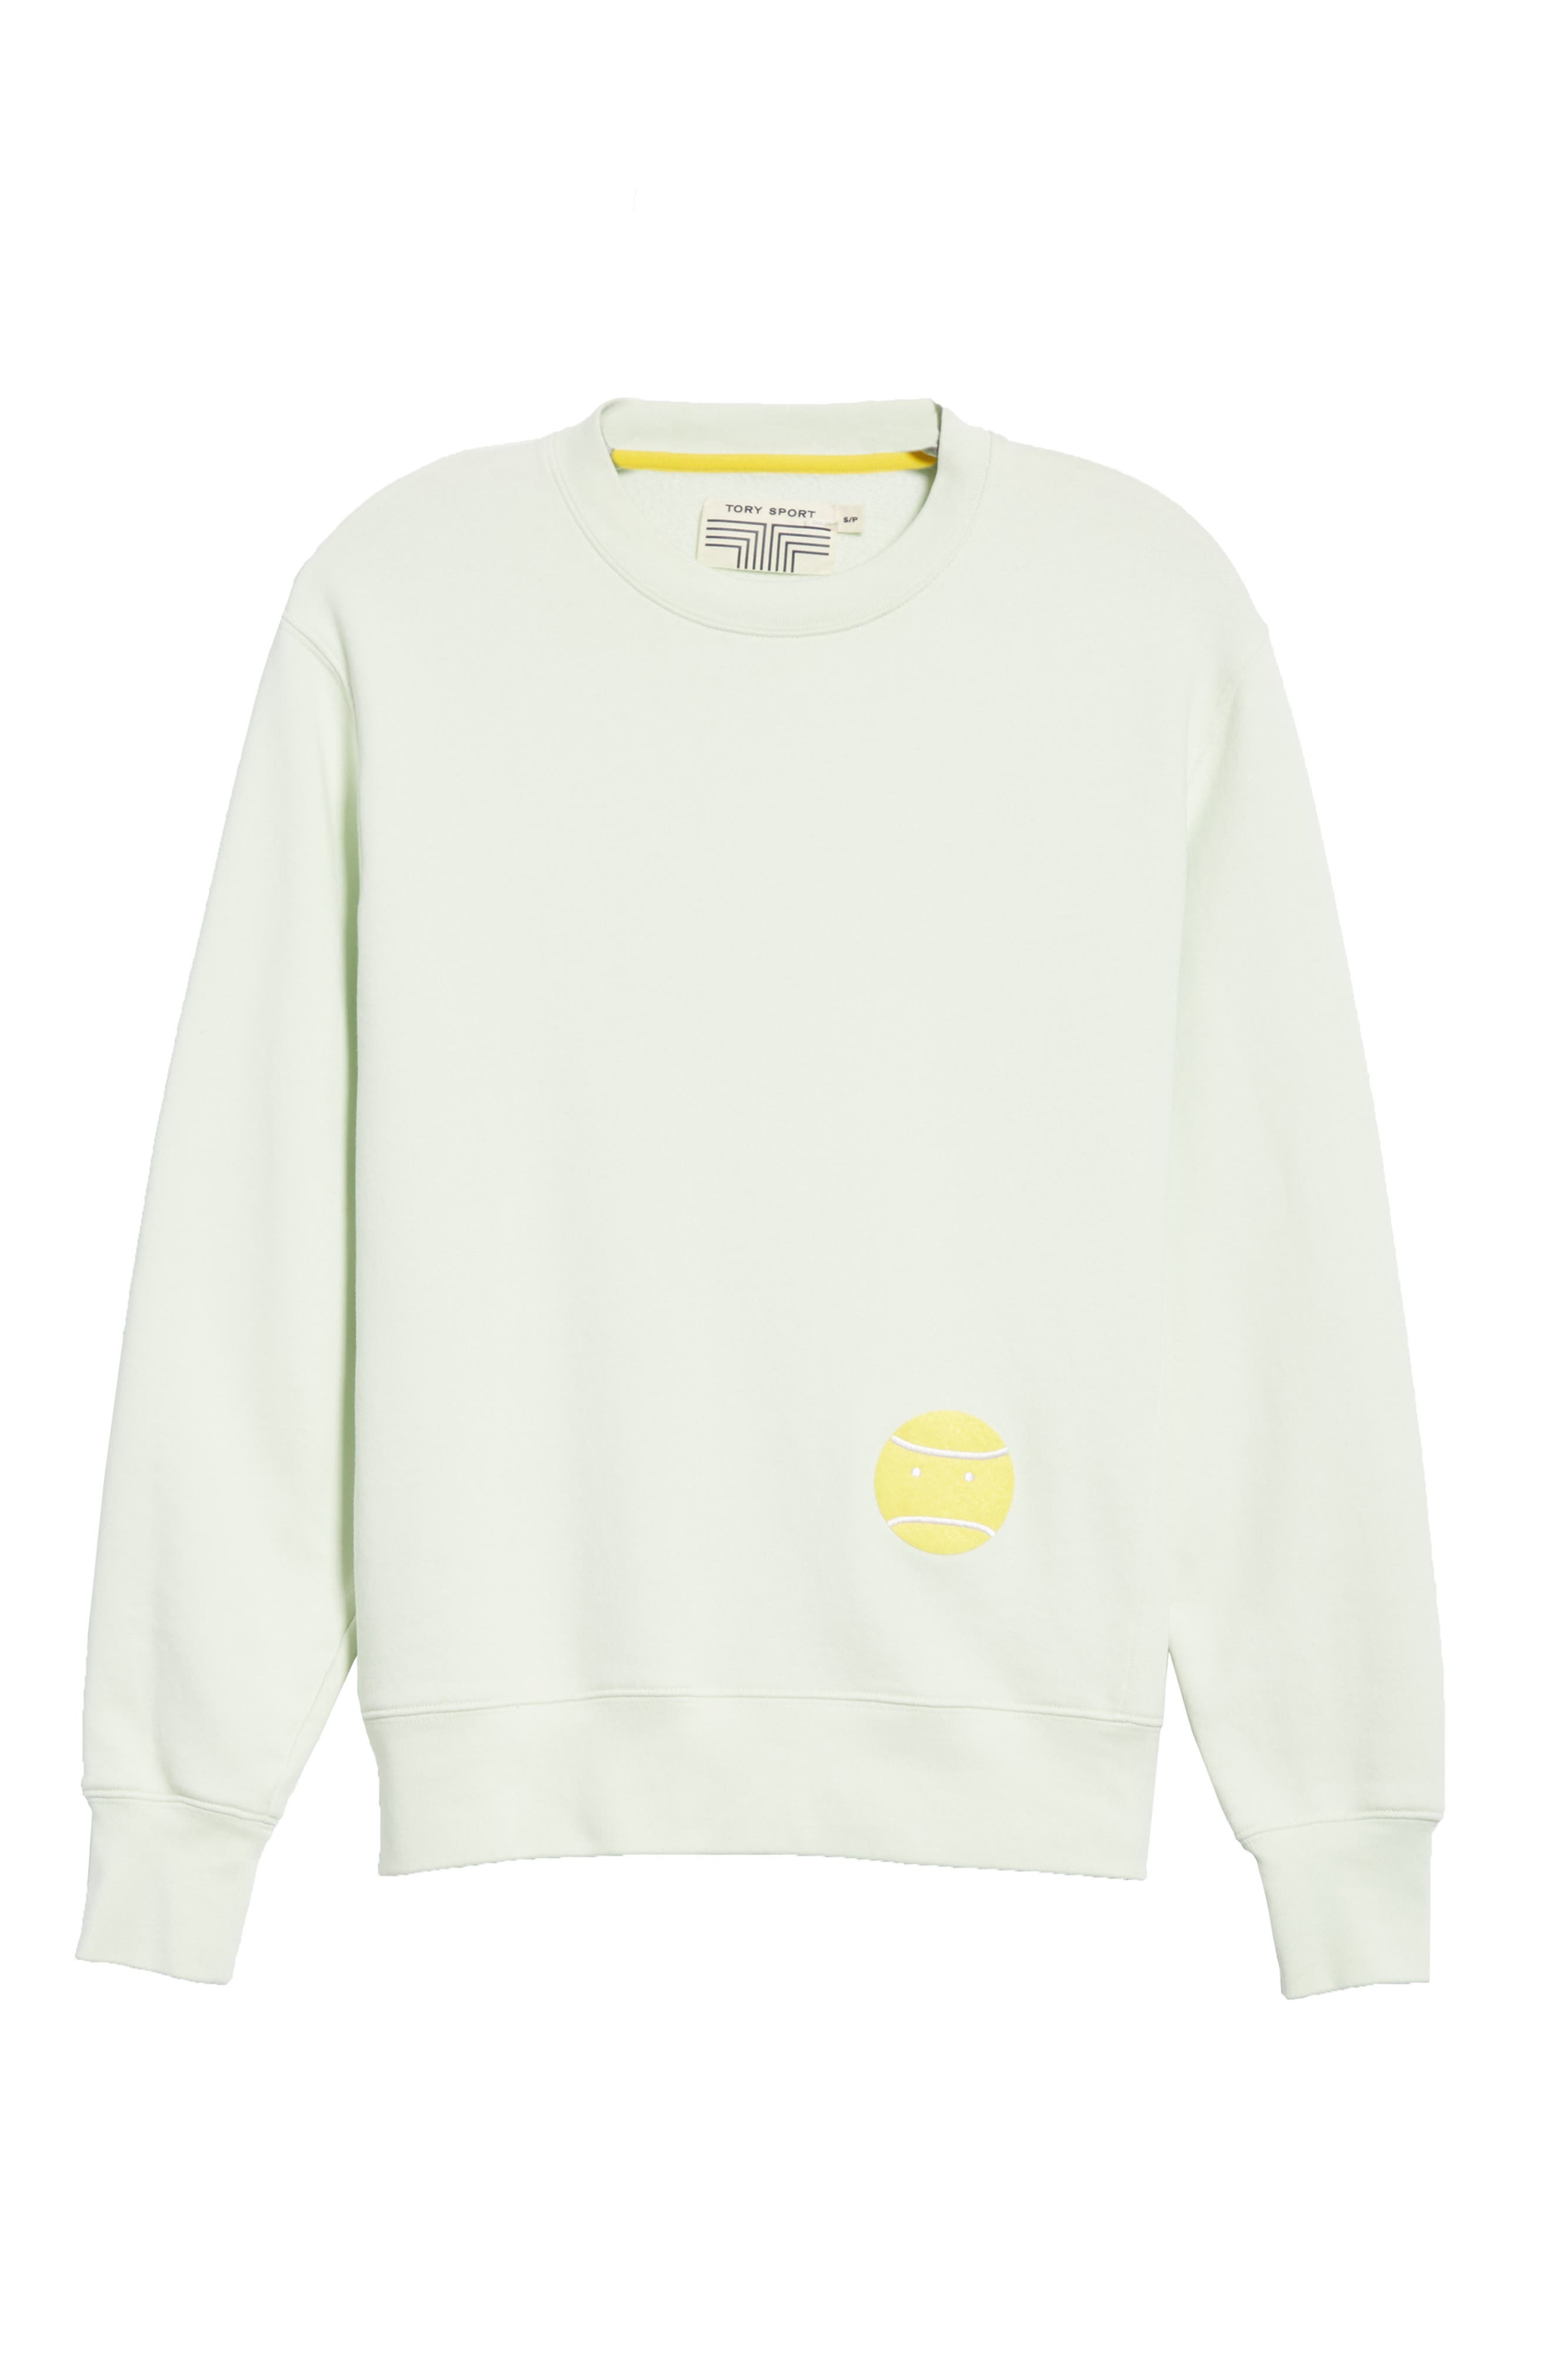 Little Grump French Terry Sweatshirt,                             Alternate thumbnail 6, color,                             Fresh Mint